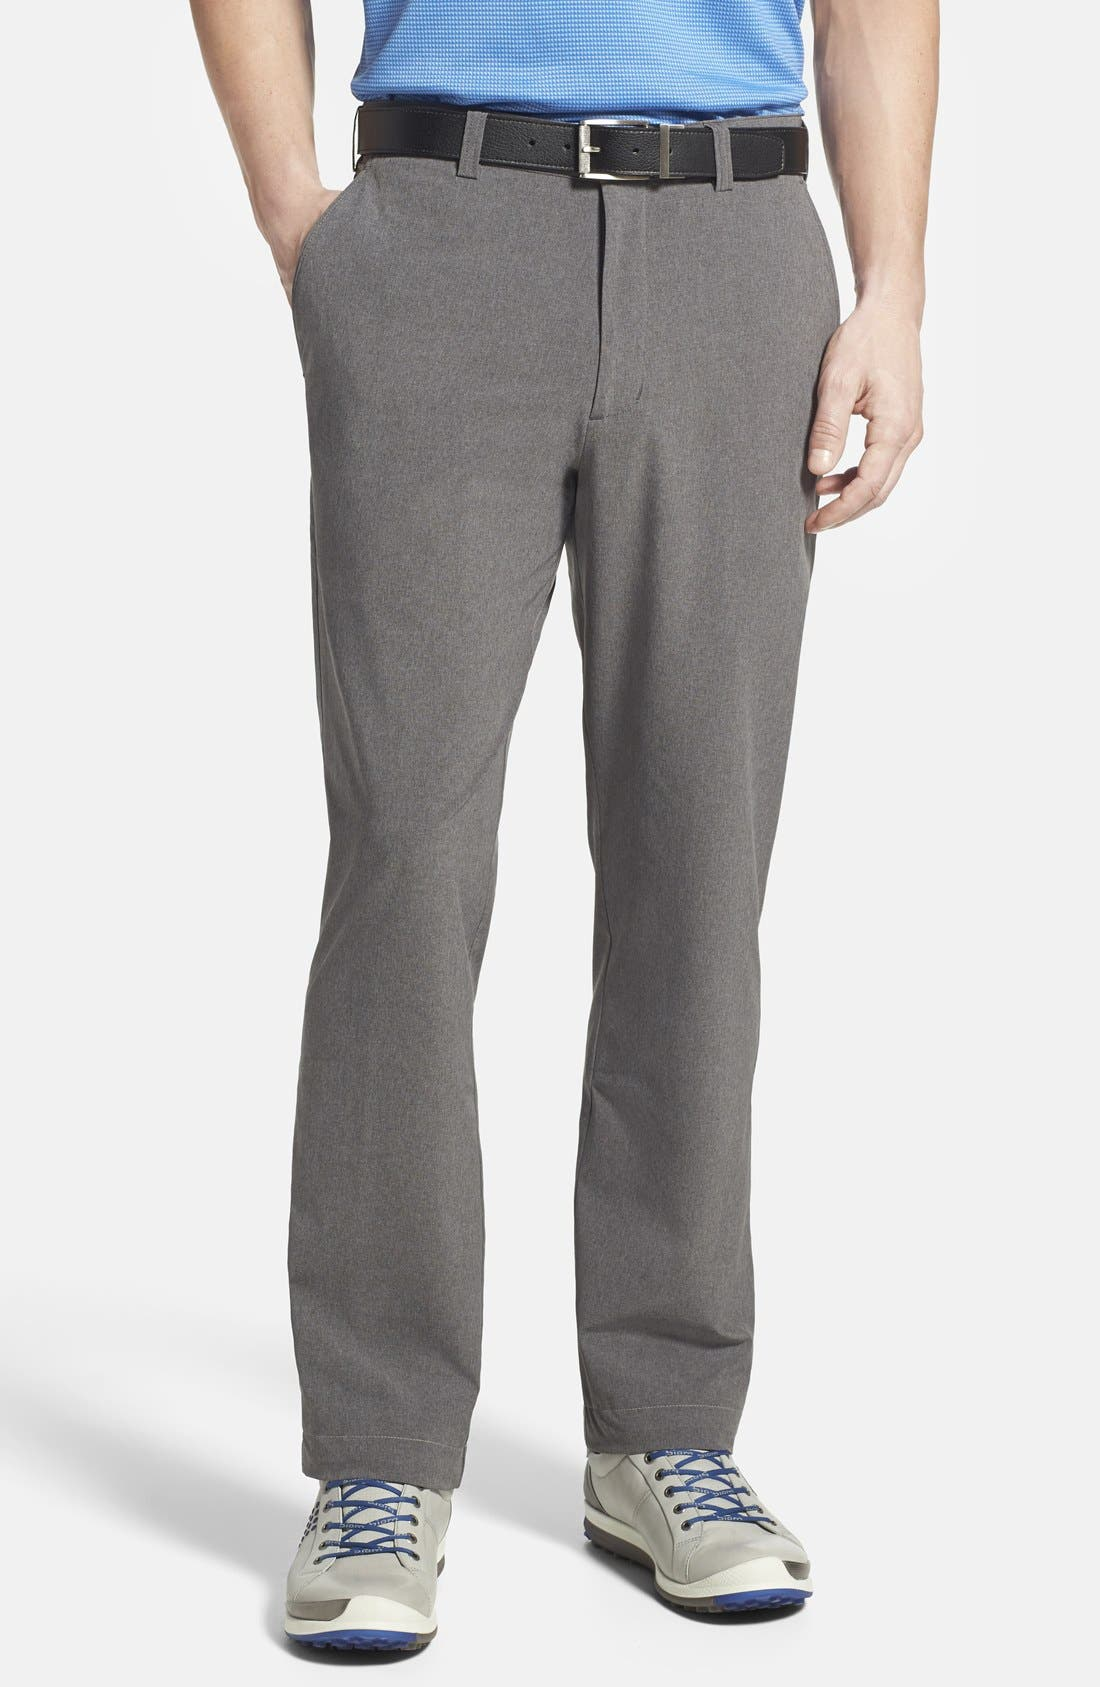 Alternate Image 1 Selected - Cutter & Buck Bainbridge DryTec Moisture Wicking Flat Front Pants